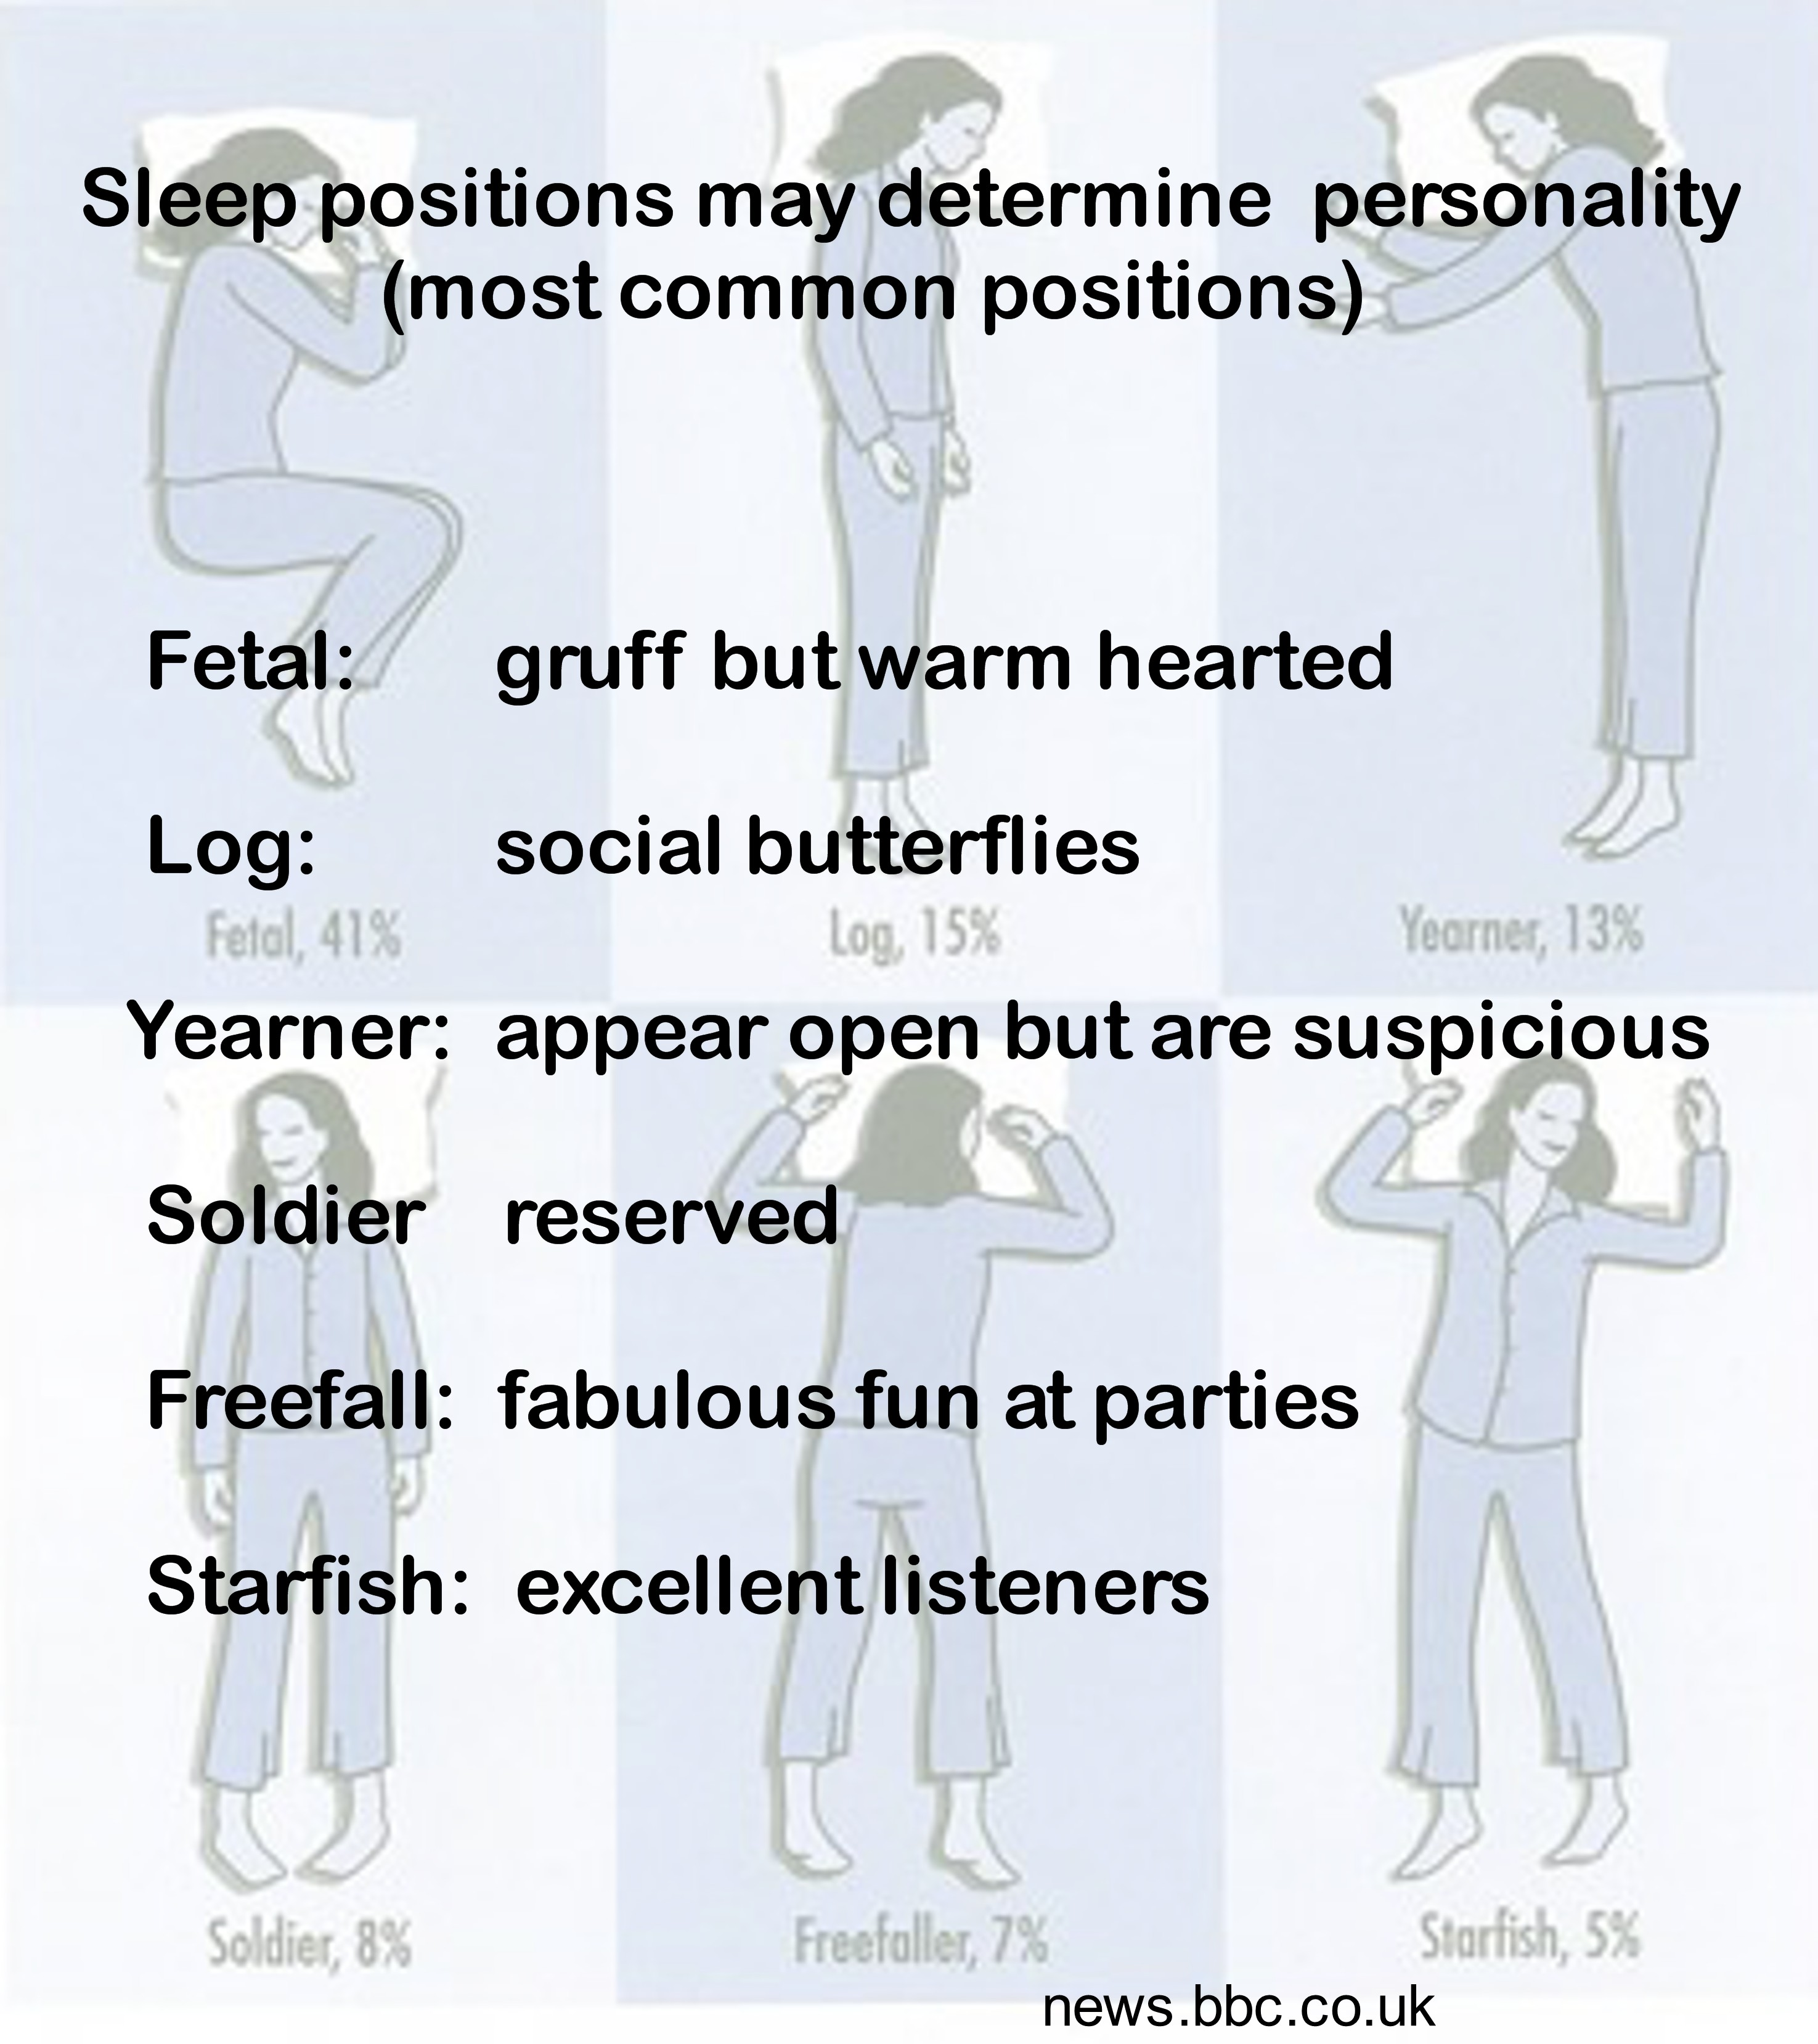 sleep positions meaning images galleries with a bite. Black Bedroom Furniture Sets. Home Design Ideas